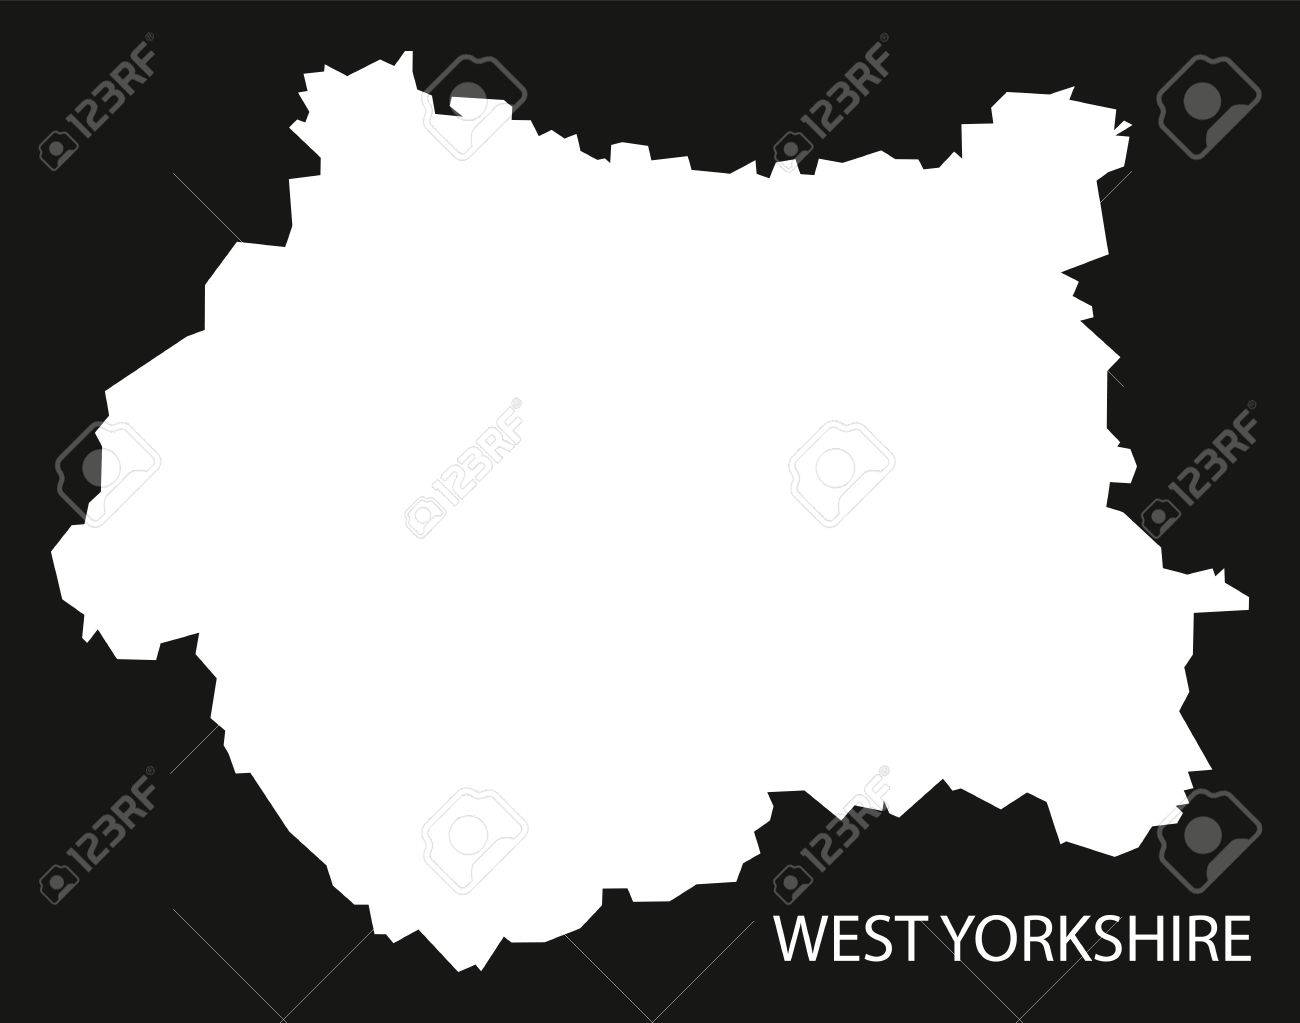 Map Of West Yorkshire Uk on map of brigham yorkshire england, map of pudsey yorkshire england, map north yorkshire uk, map of west yorkshire yorkshire and british, map west yorkshire england, map of north west uk, map west riding yorkshire uk, map of south west uk, cities in yorkshire uk, map of india's special sites, map of west ireland, map of west scotland, map of yorkshire dales uk, map of dewsbury yorkshire england, map of west midlands uk, map of west wales,